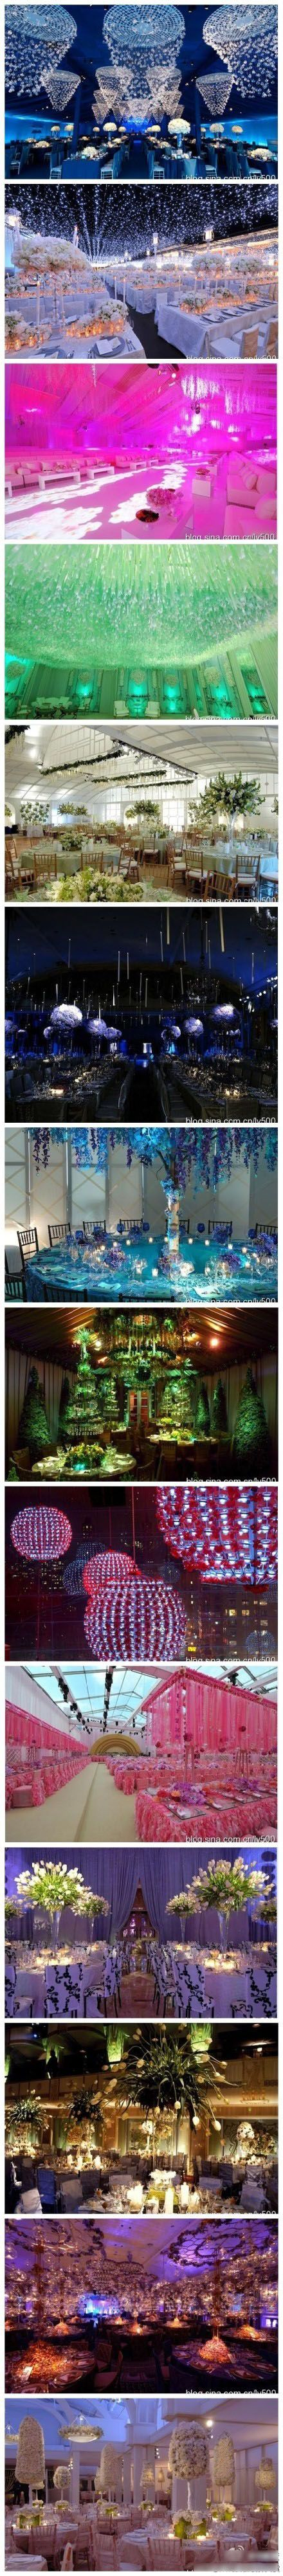 wedding hall decor, gorgeous!